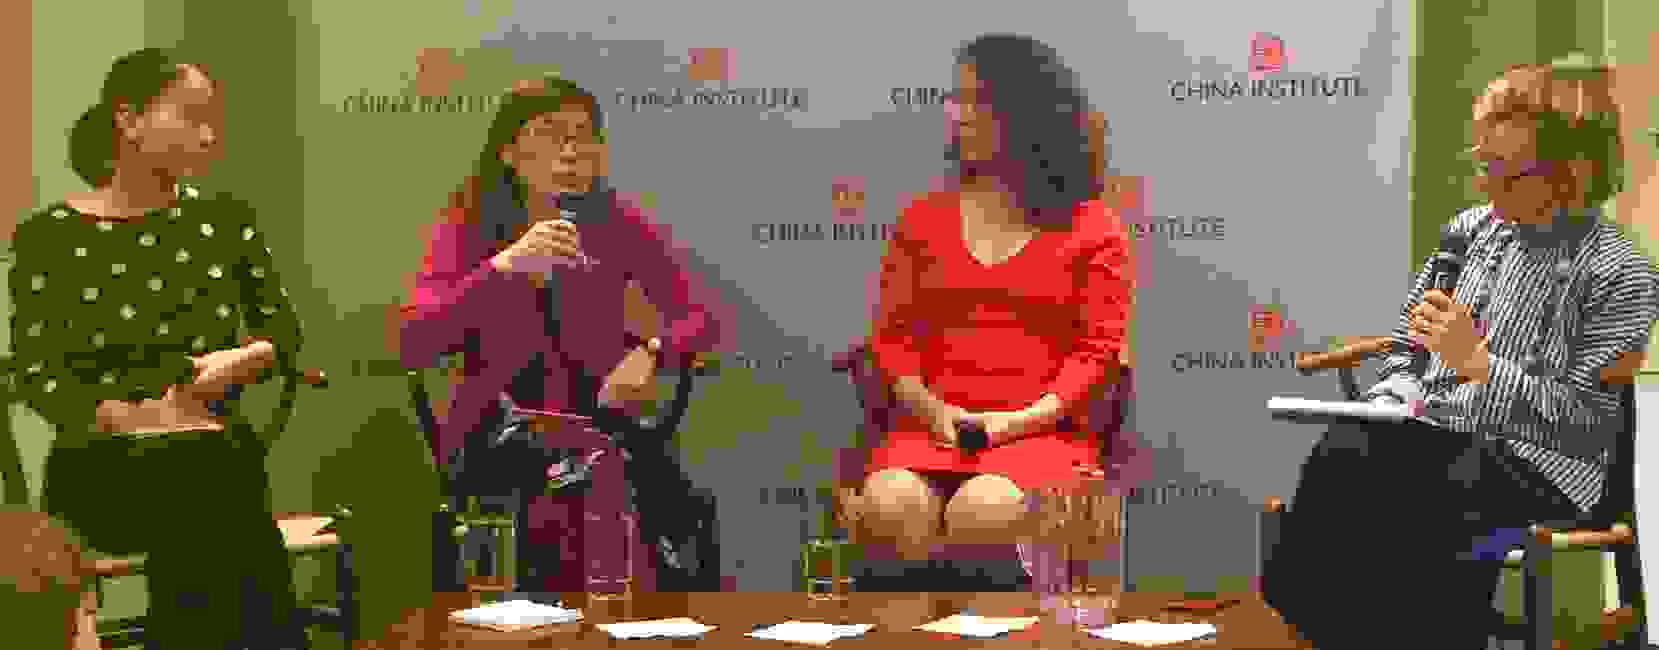 China Institute's Dinda Elliott, Leta Hong Fincher, Betraying Big Brother, Lu Pin, Feminist Voices